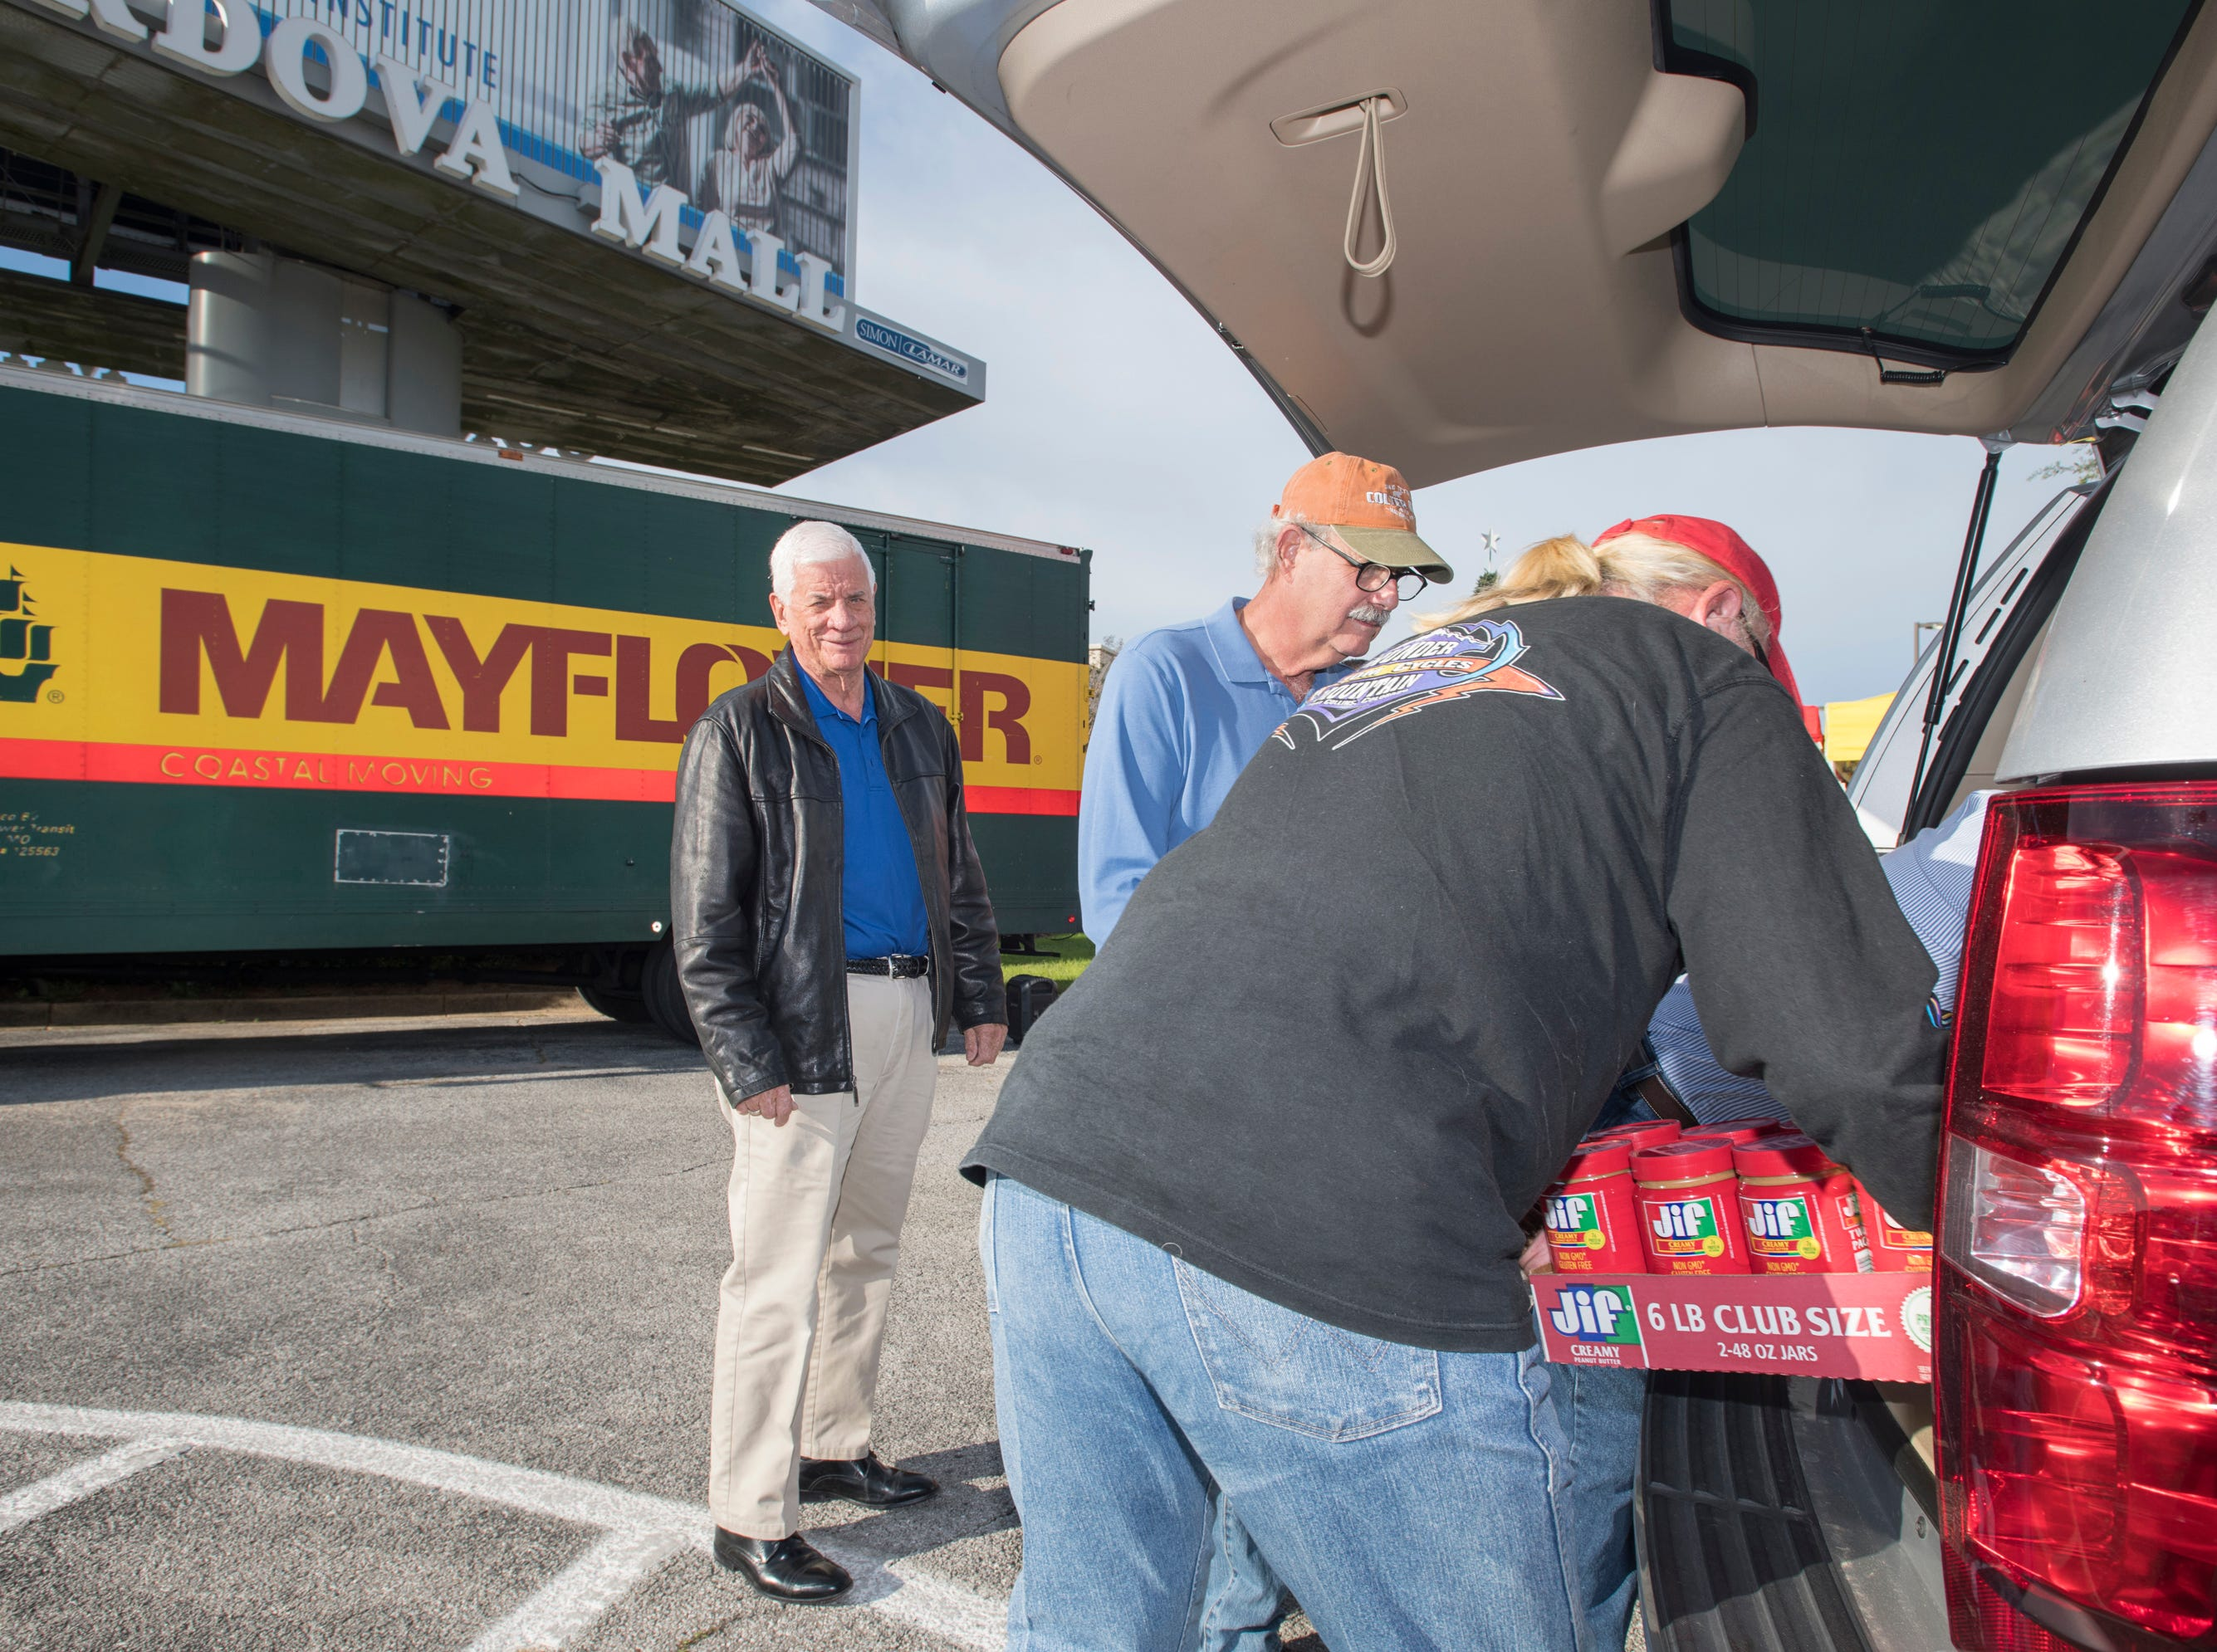 Pensacola's Manna Food Pantry collects donations during annual Fill the Mayflower drive